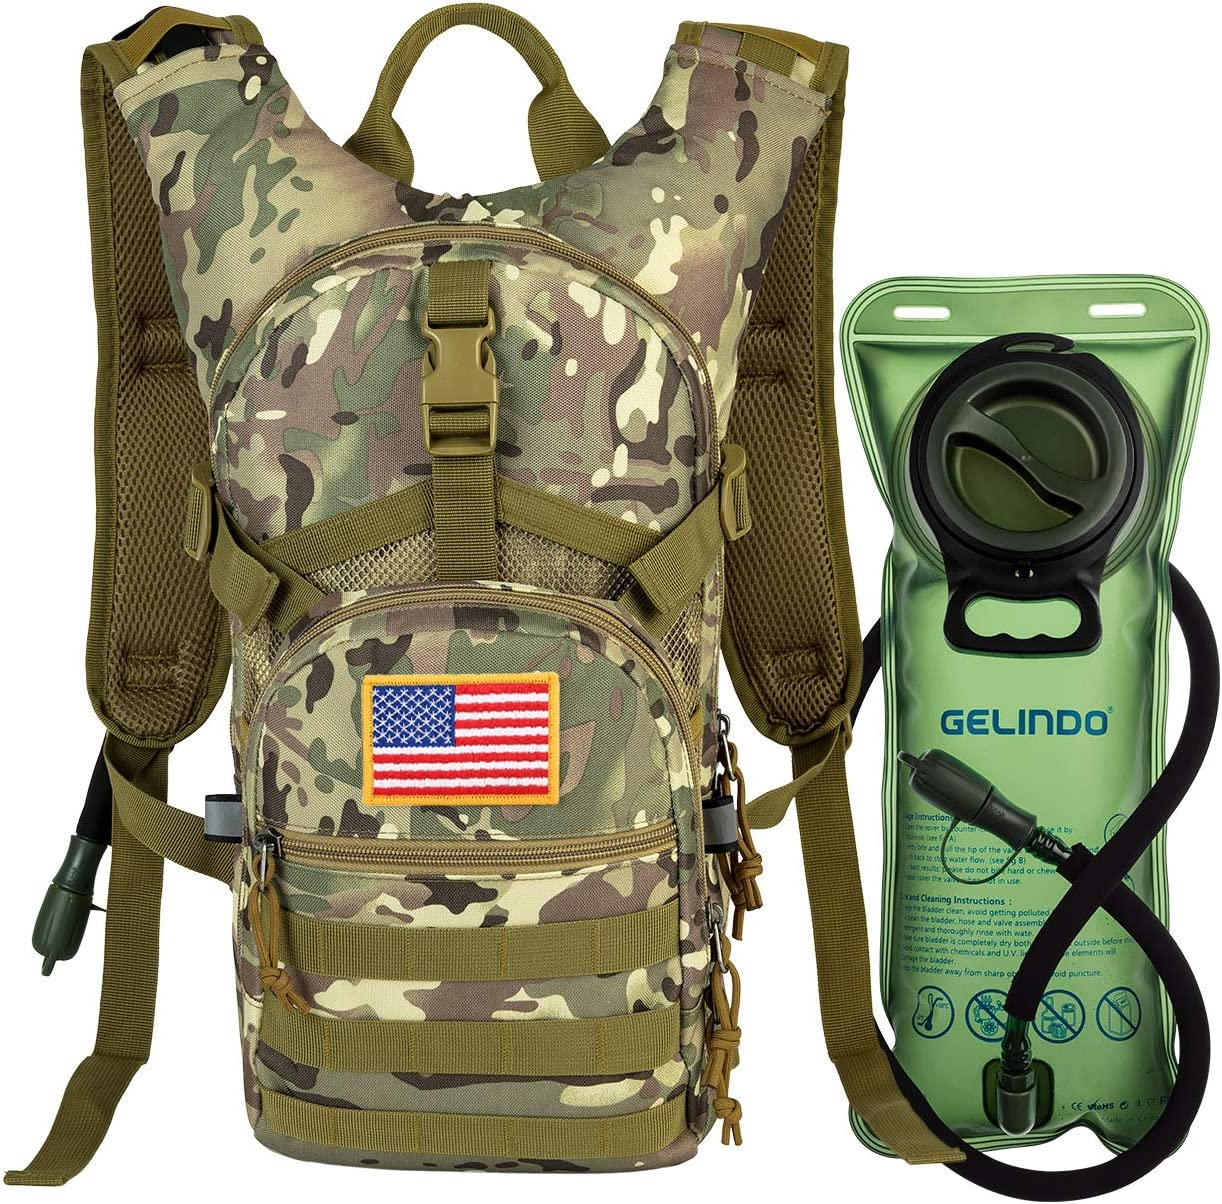 Gelindo Military Tactical Hydration Backpack